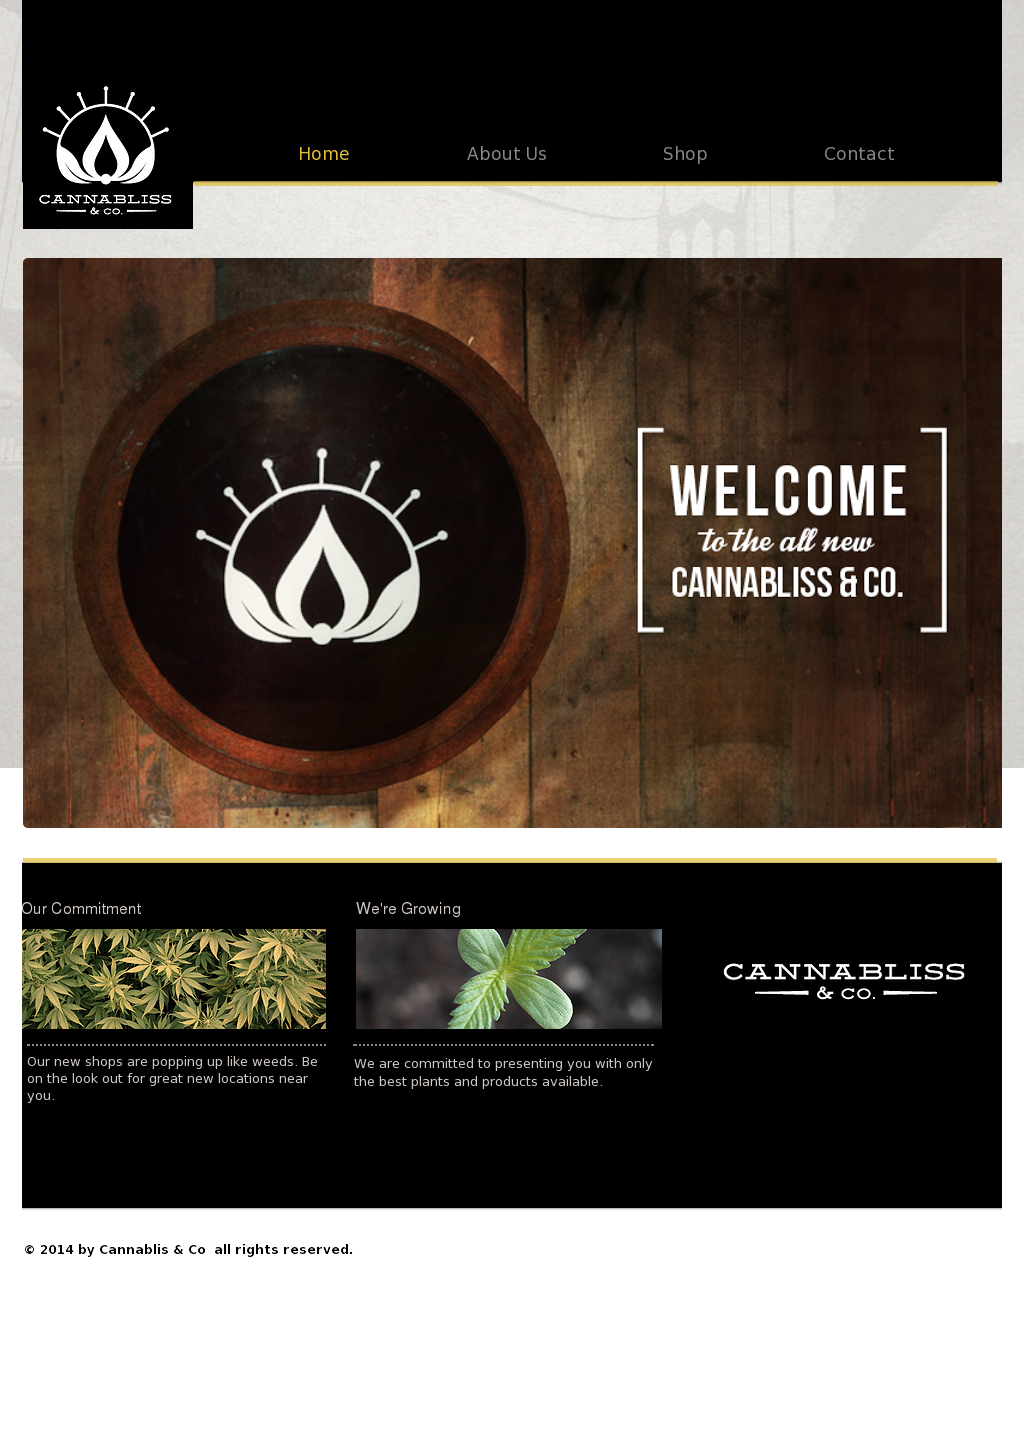 Cannablis Competitors, Revenue and Employees - Owler Company